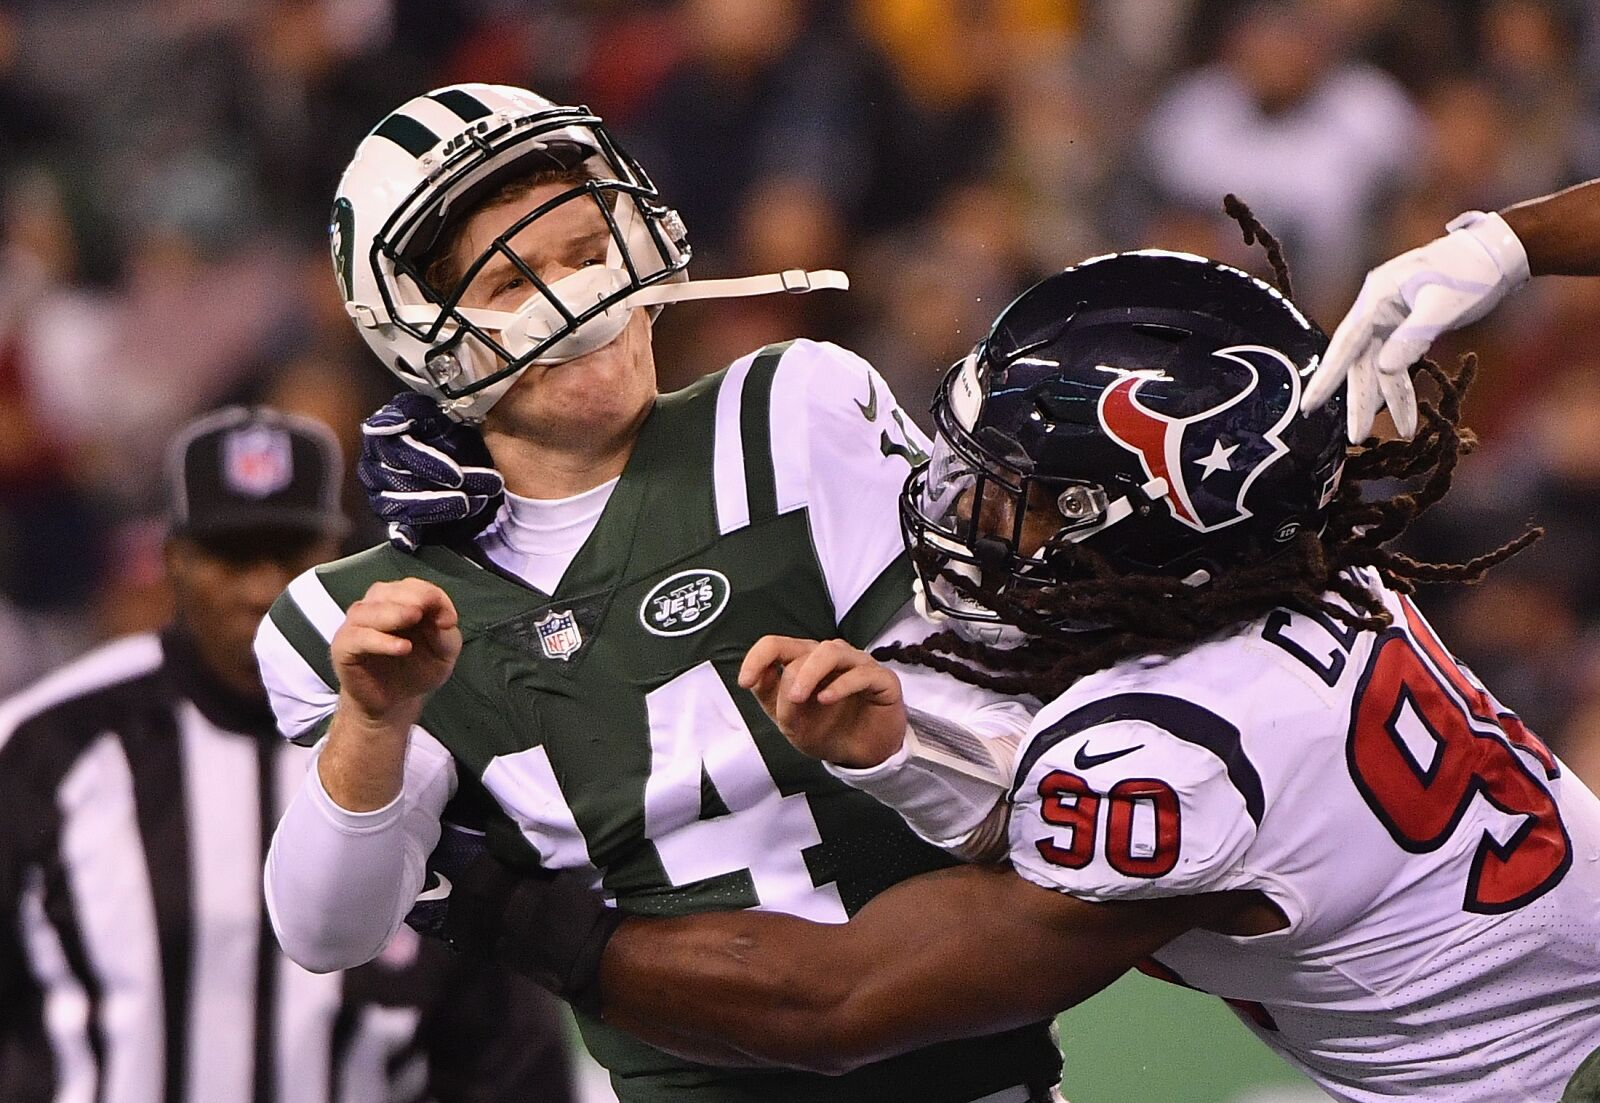 Is Bill O'Brien confident enough to trade Jadeveon Clowney to Tennessee Titans?